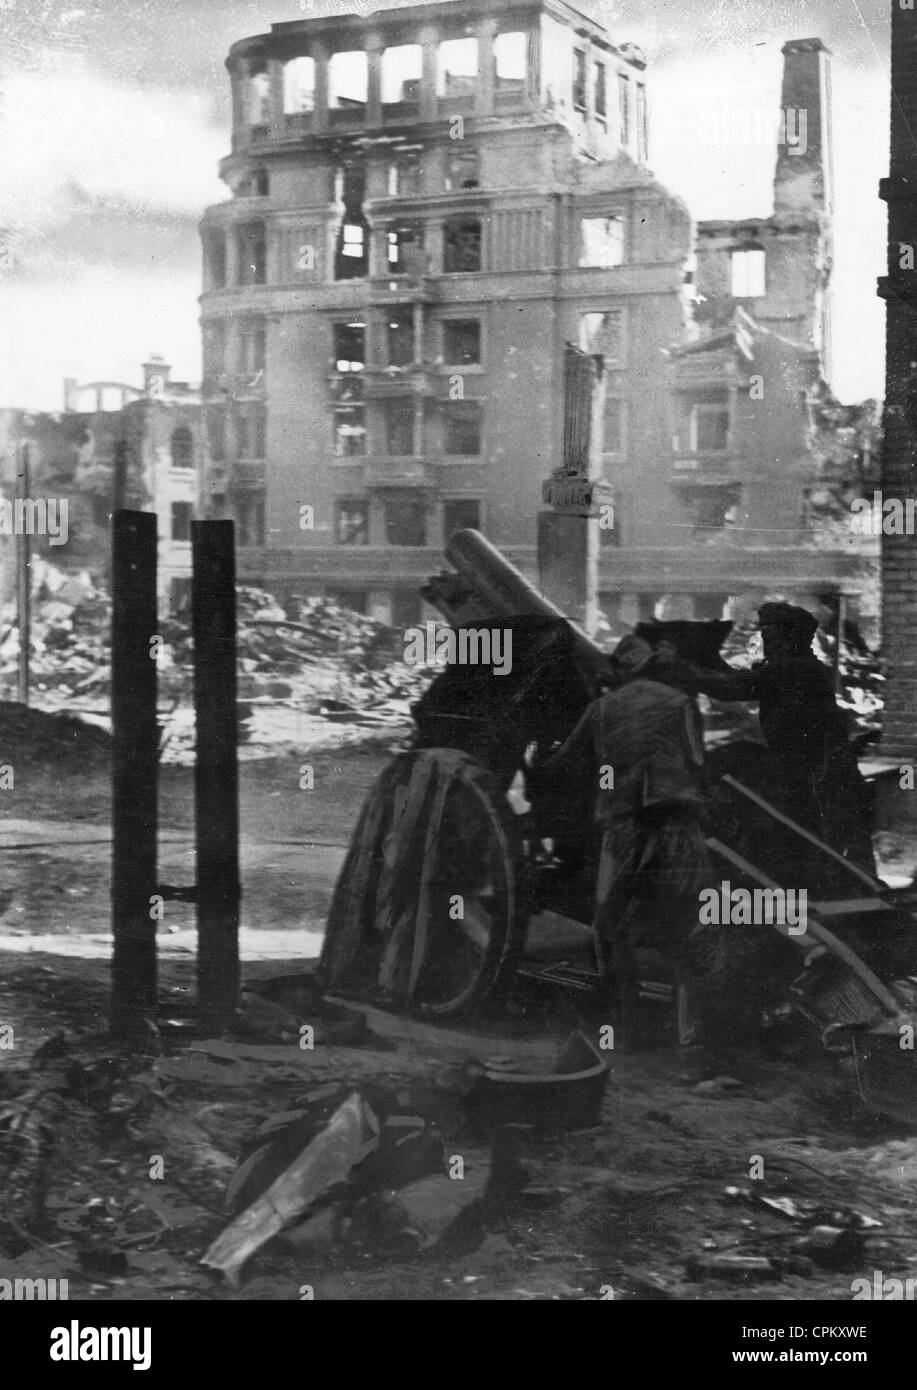 essay on the battle of stalingrad Read this full essay on the battle of stalingrad the battle of stalingrad the  battle of stalingrad was such a significant even in the outcome of.